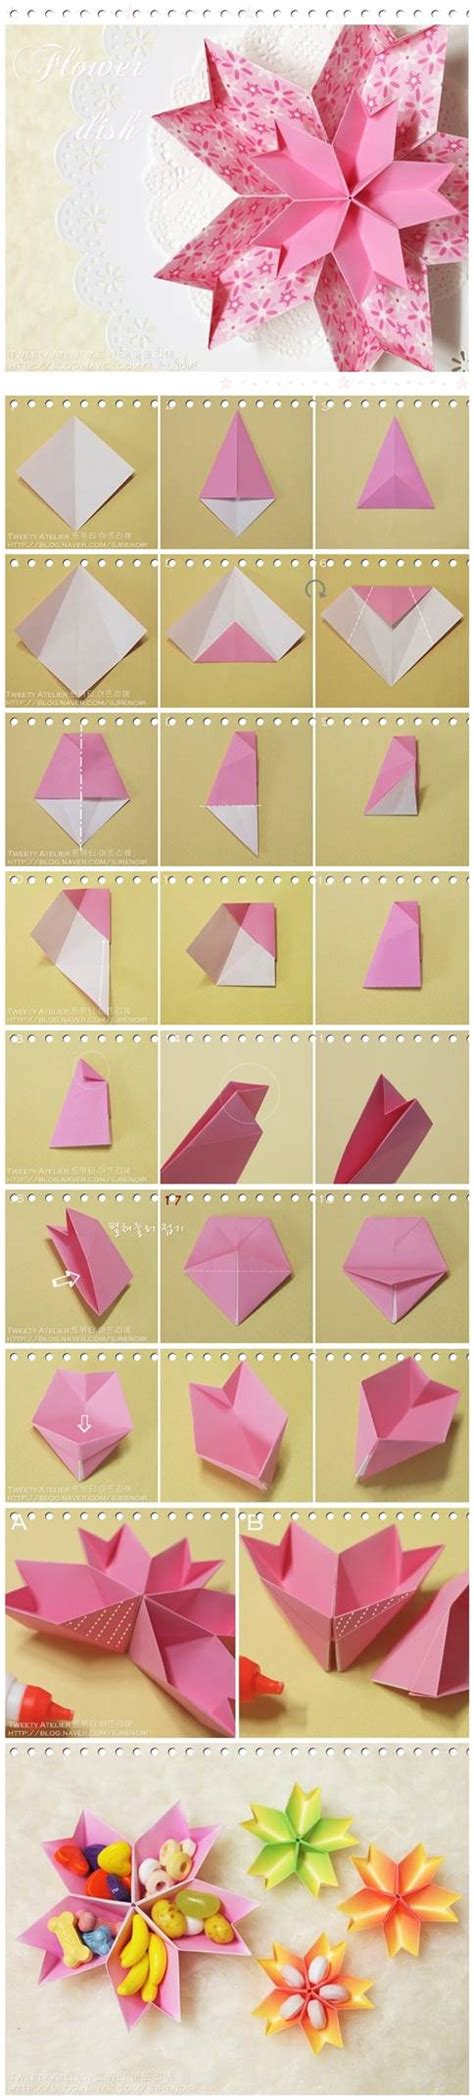 How To Make Paper Dish - how to make paper flower dish step by step diy tutorial